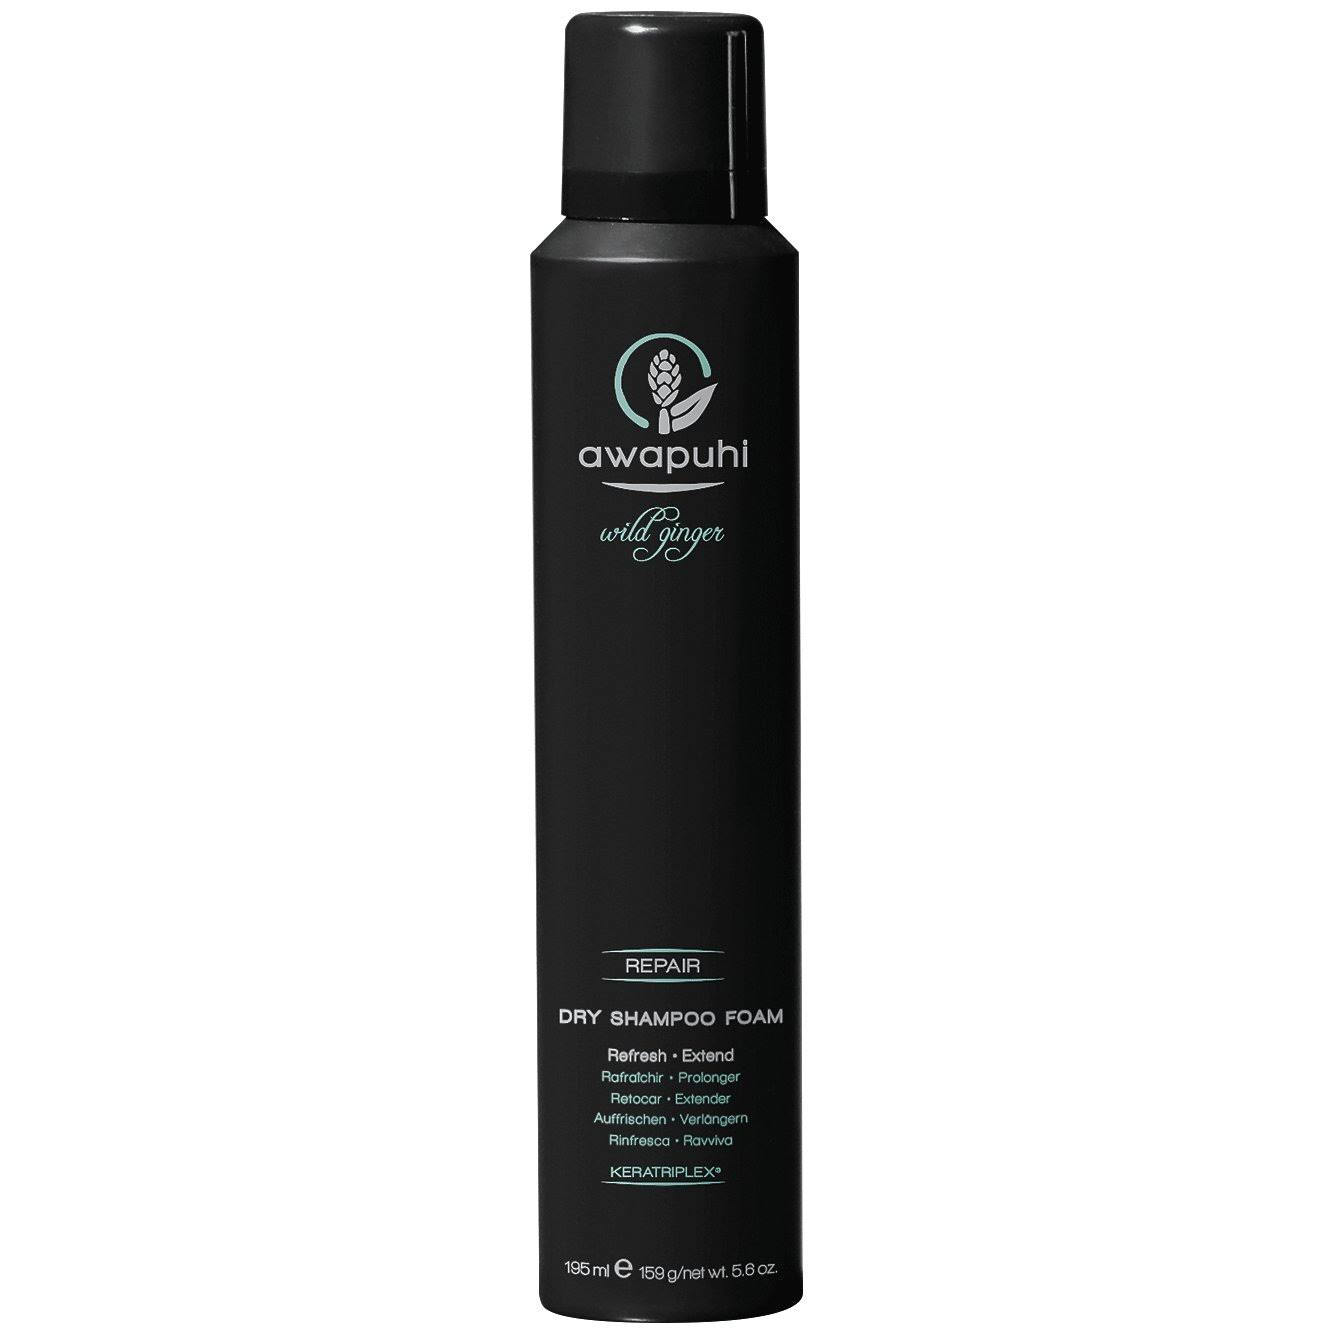 Paul Mitchell Awapuhi Wild Ginger Repair Dry Shampoo Foam - 5.6oz